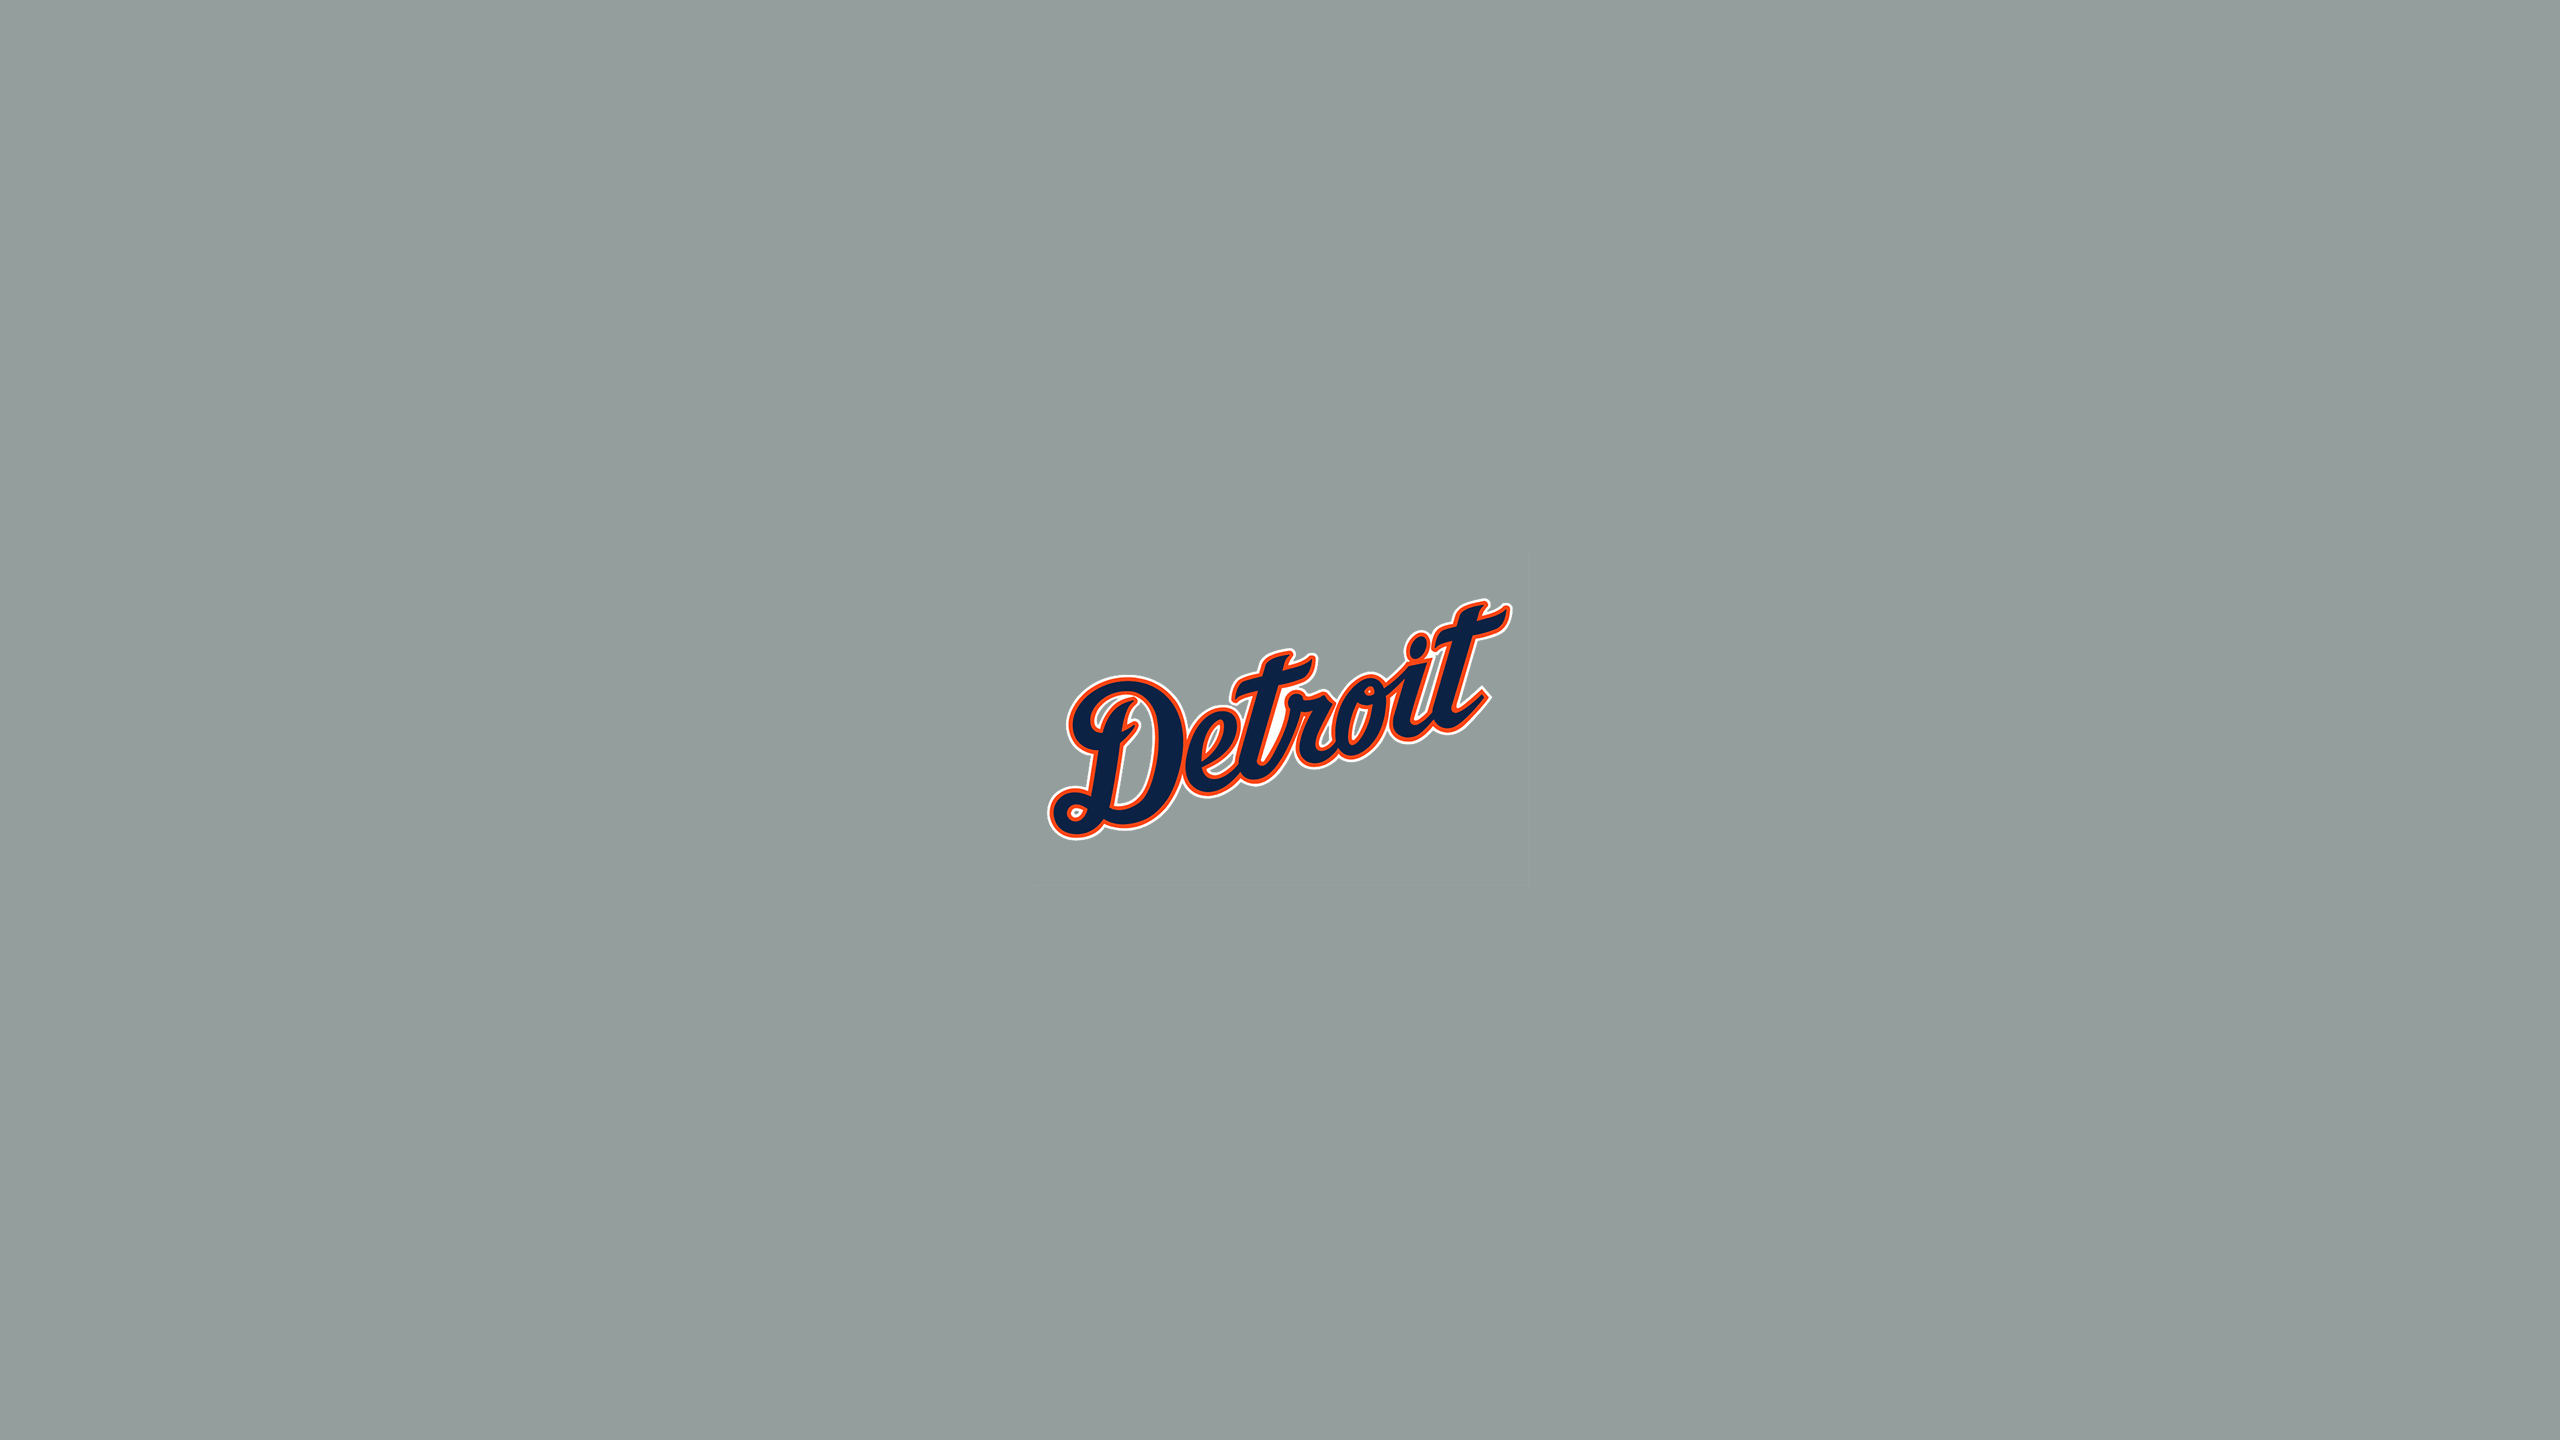 Detroit Tigers (Away)